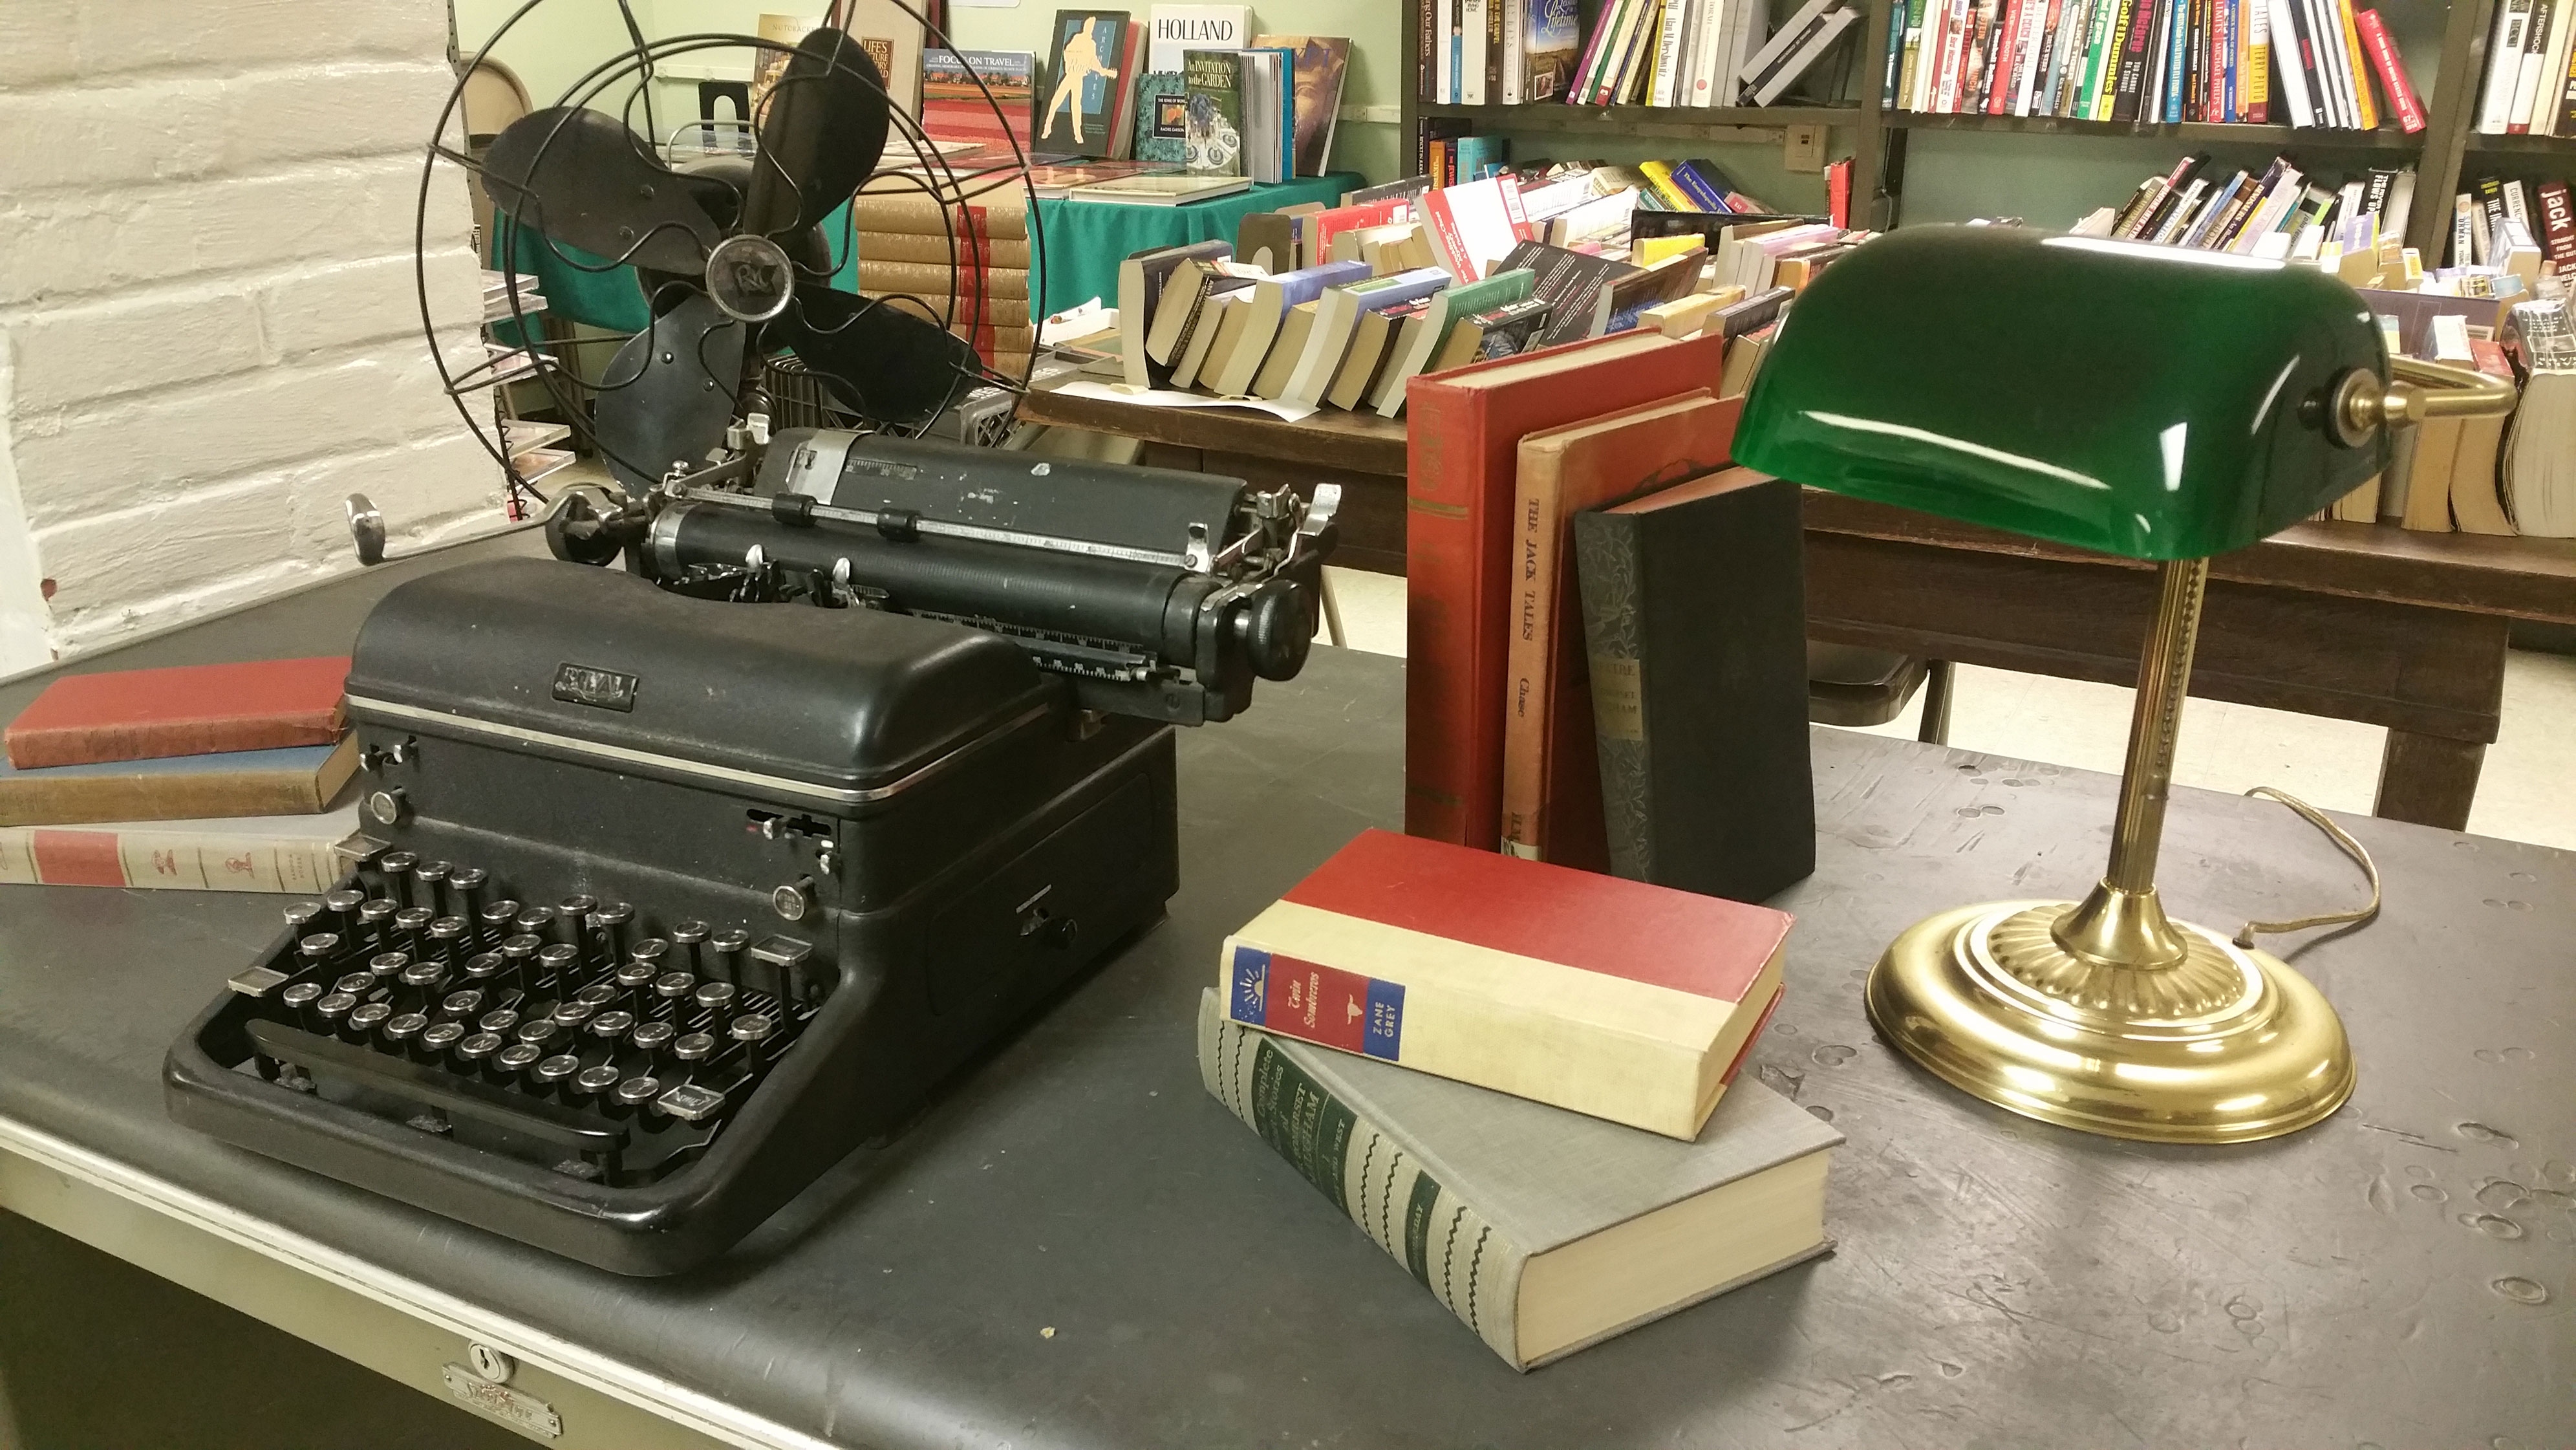 typewriter, lamp, and books on desk